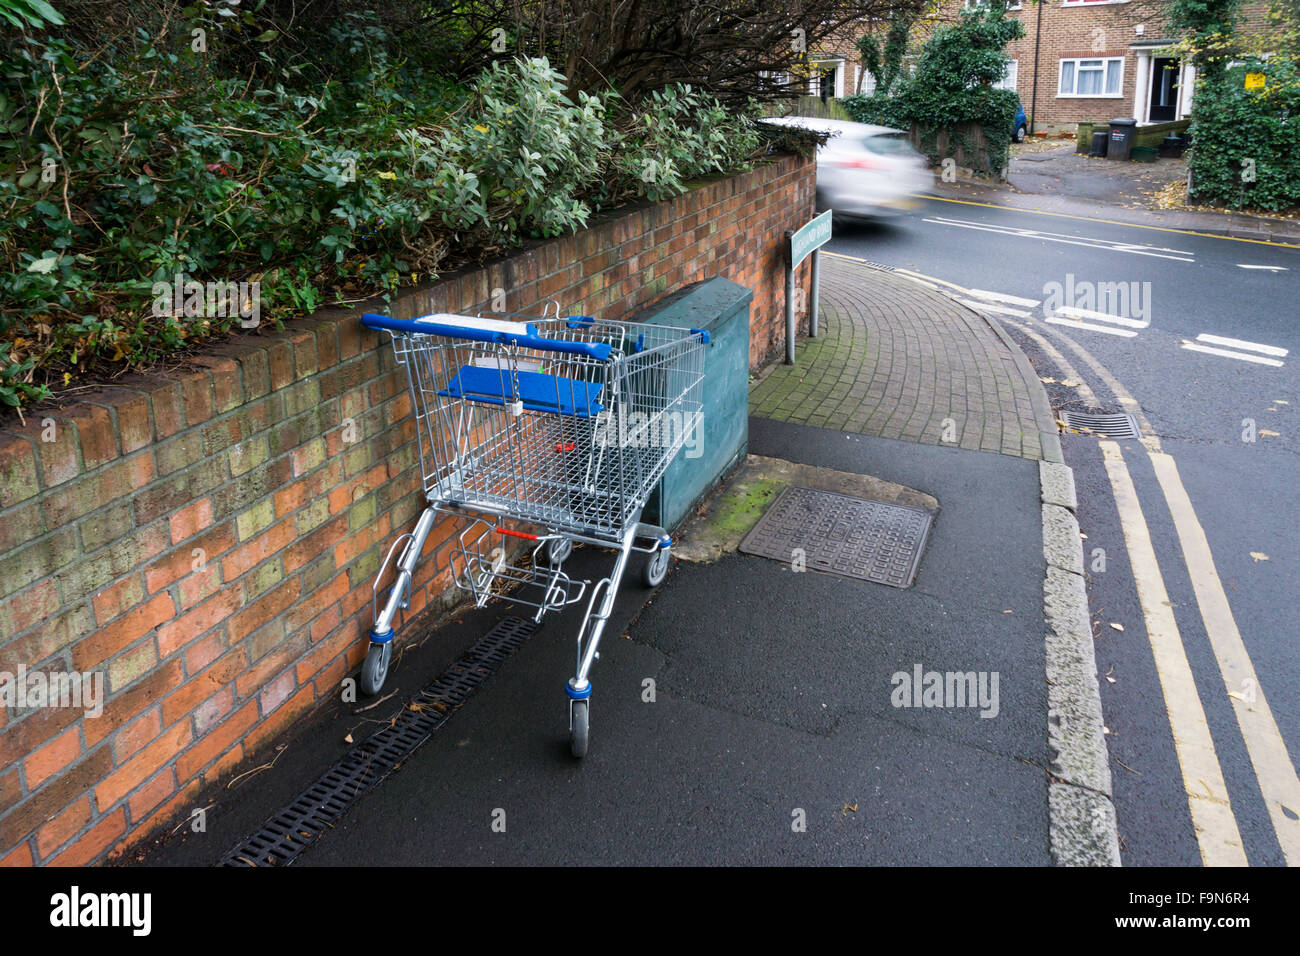 An abandoned supermarket trolley near a busy suburban road in south London. - Stock Image